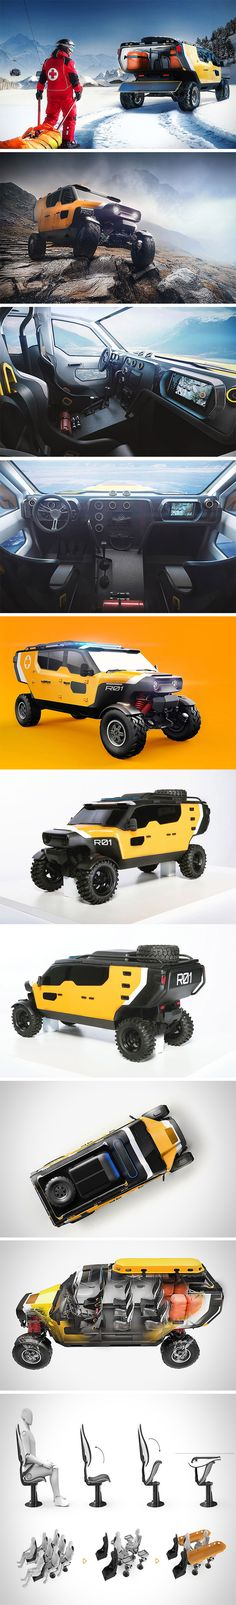 Surgo is 4×4 offroad vechicle designed for rescue services in places an average ambulance would never reach. To make this possible, it sports an innovative suspension designed and prototyped by the Automotive Industry Institute in Warsaw. It has the ability to lock the entire body in a shifted position, a system of additional springs/shock absorbers. This allows unprecedented offroad capabilities and near limitless reach.